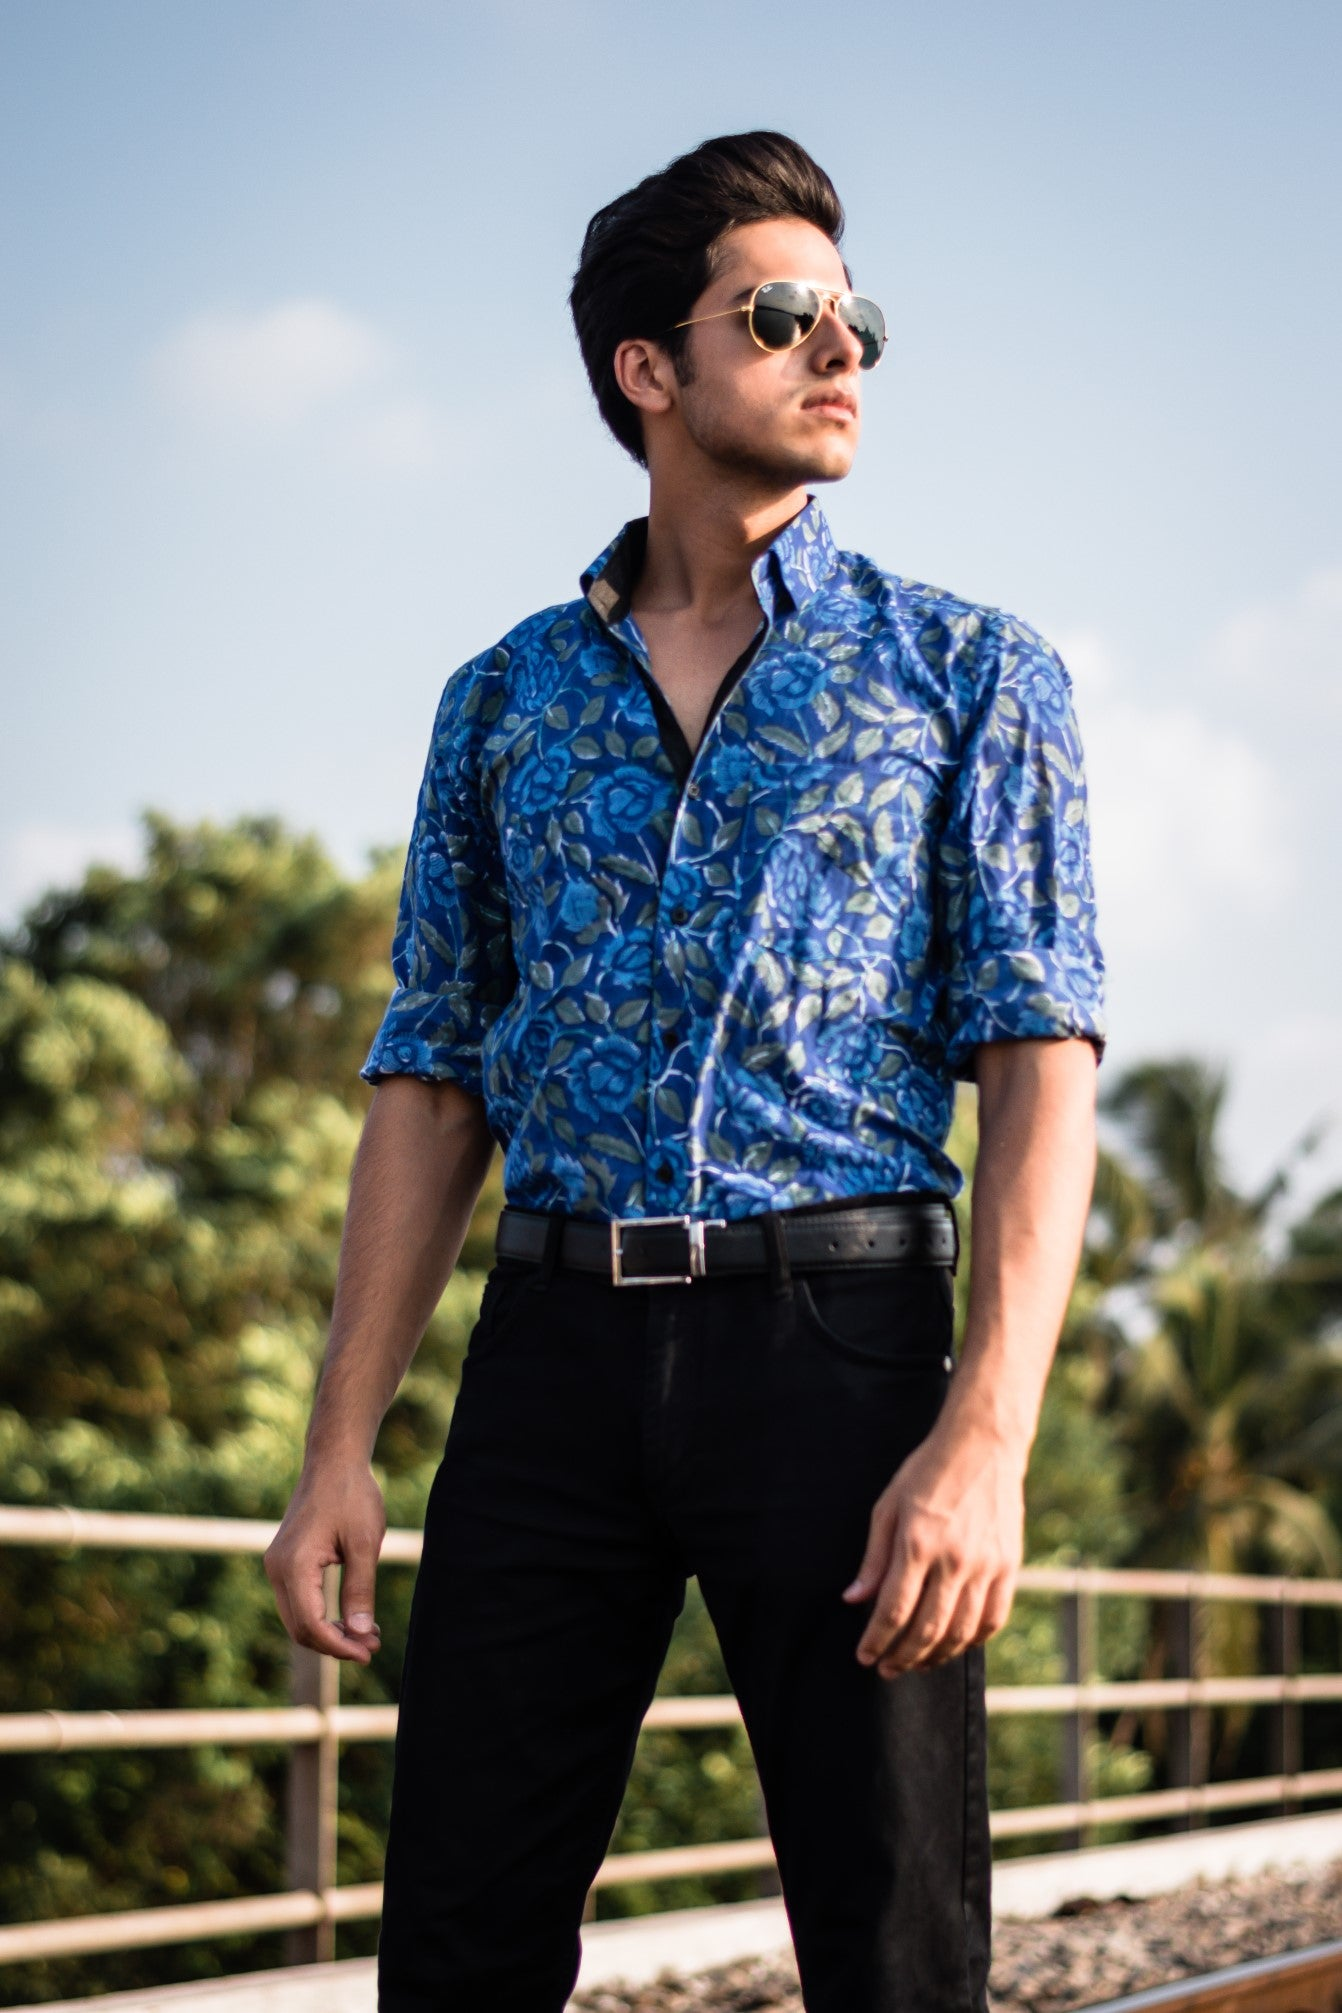 Deep blue with green petals printed shirt by Kaldern clothing designed for a grandeur look.